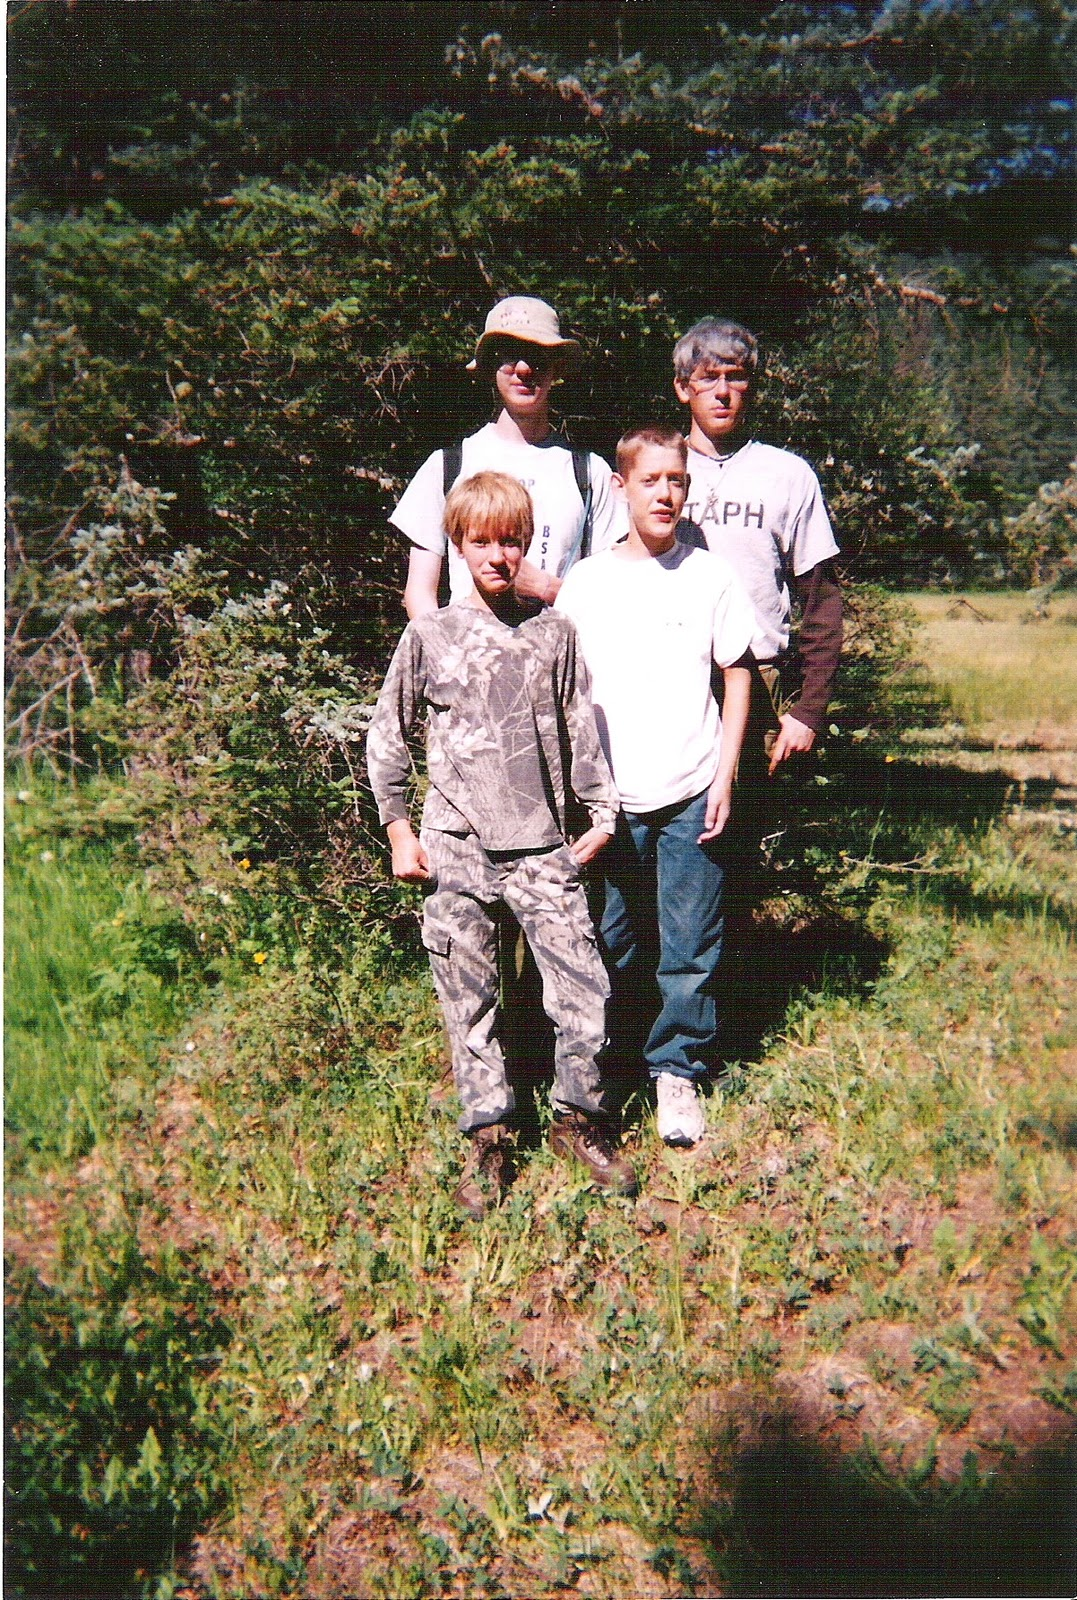 a picture of me with three campers in the woods.